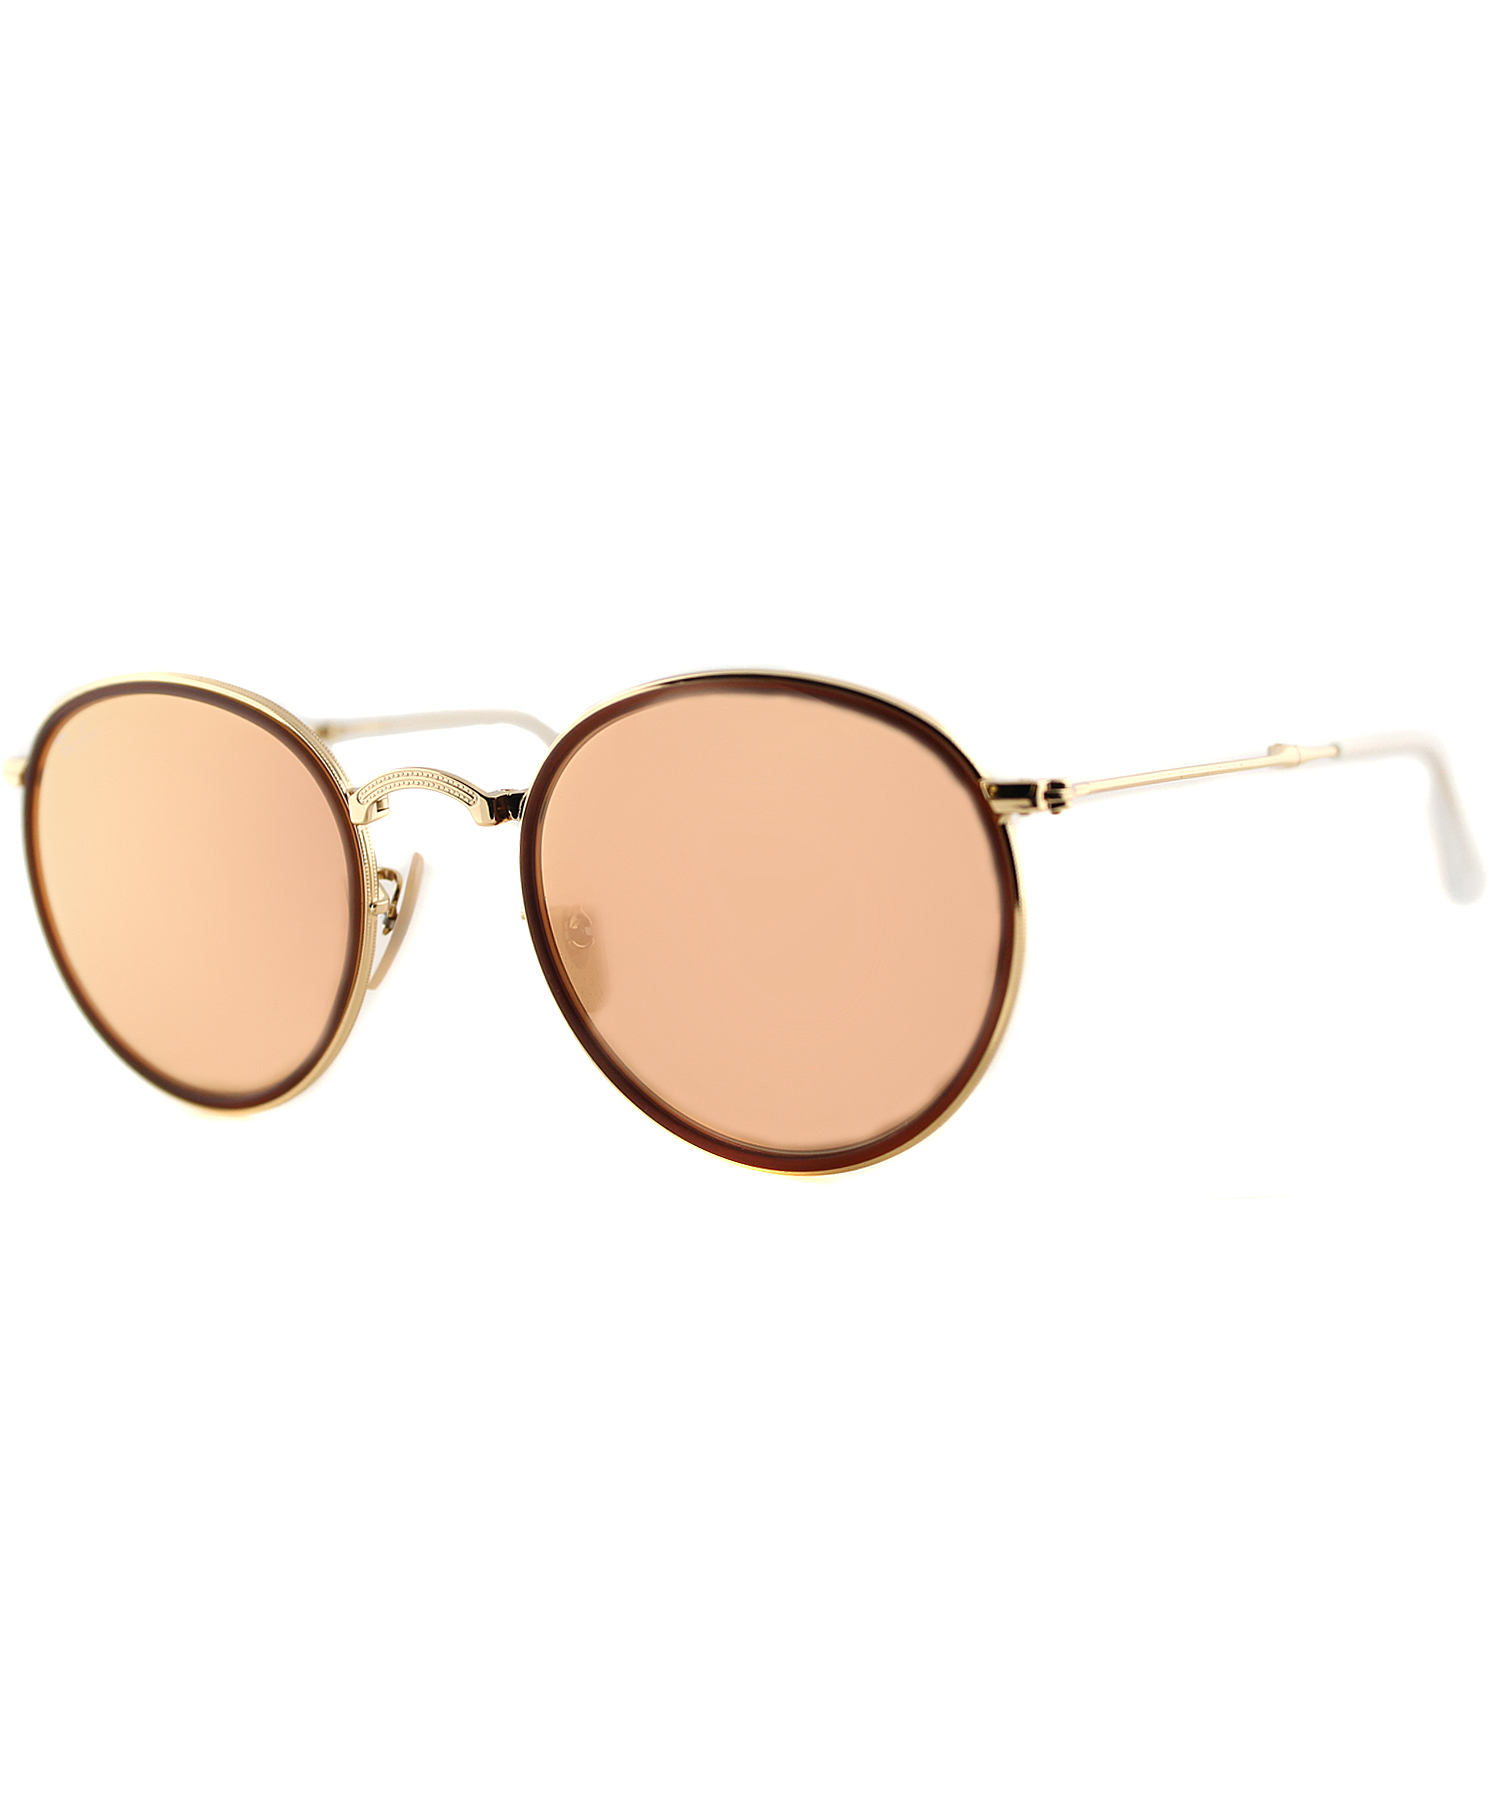 ray ban round metal sunglasses in brown gold save 18 lyst. Black Bedroom Furniture Sets. Home Design Ideas